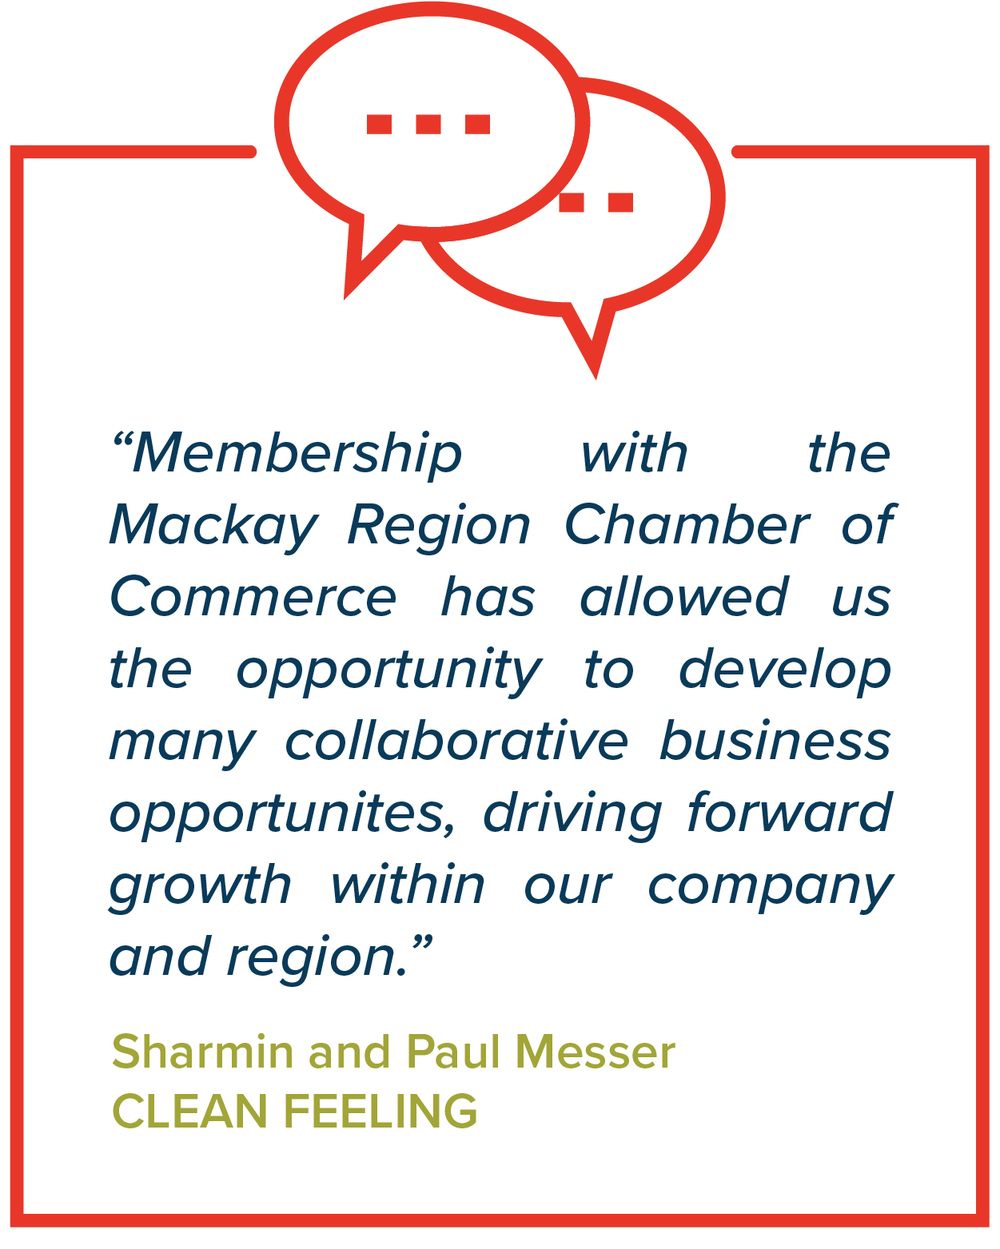 Membership with the Mackay Region Chamber of Commerce has allowed us the opportunity to develop many collaborative business opportunities, driving forward growth within our company and region - Sharmin and Paul Messer, Clean Feeling